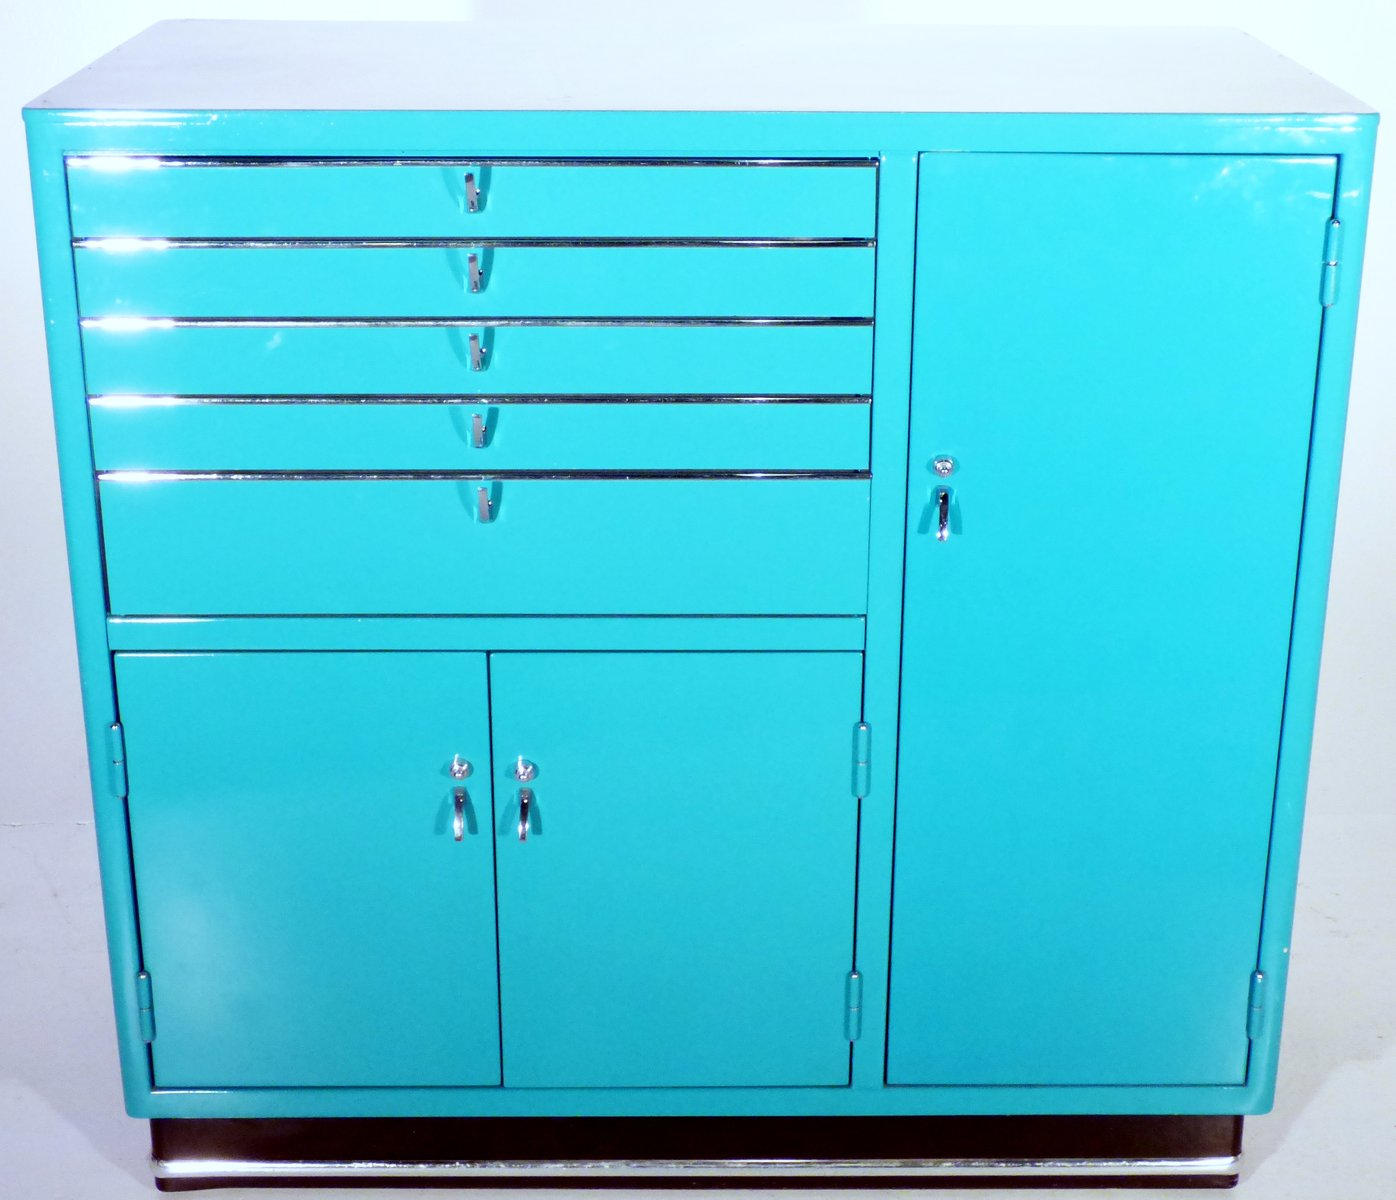 armoire pharmacie vintage turquoise par karl baisch en vente sur pamono. Black Bedroom Furniture Sets. Home Design Ideas